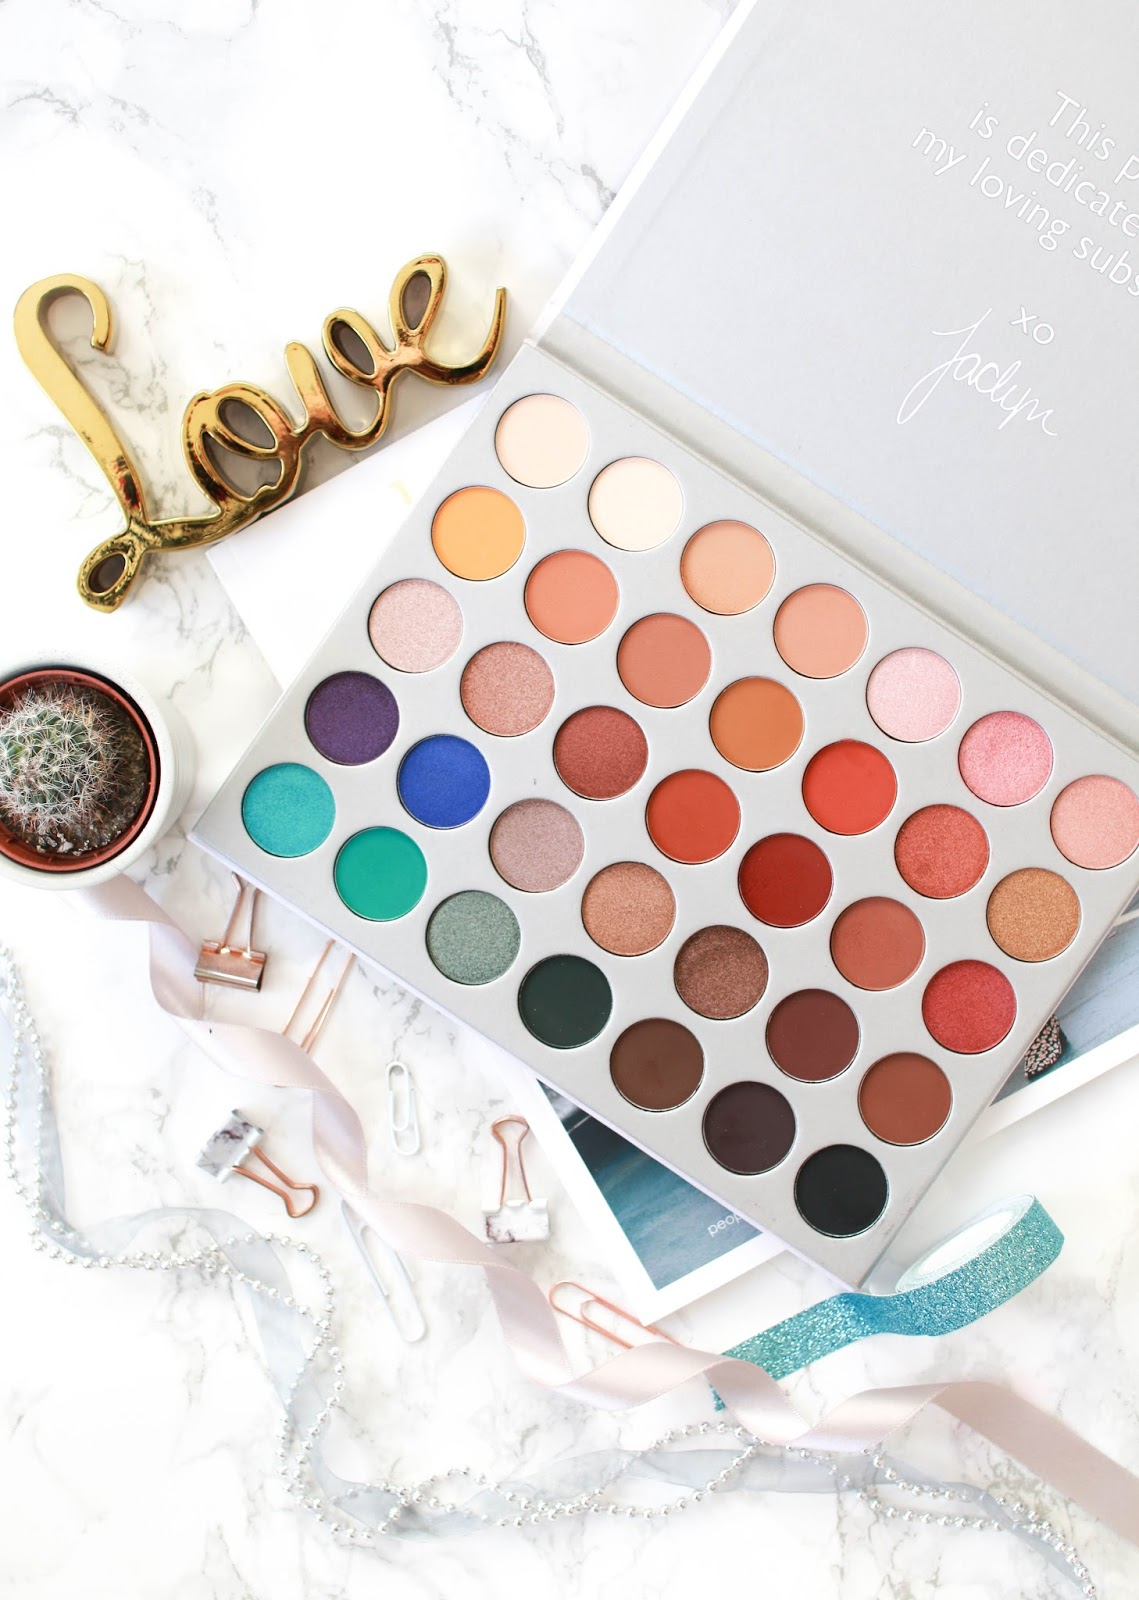 jaclyn hill, morphe, eyeshadow palette, jaclyn hill x morphe palette, makeup, beauty, beauty blogger, lifestyle, lifestyle blogger, fashion, fashion blogger, makeup guru, beauty guru, forever september, blogger